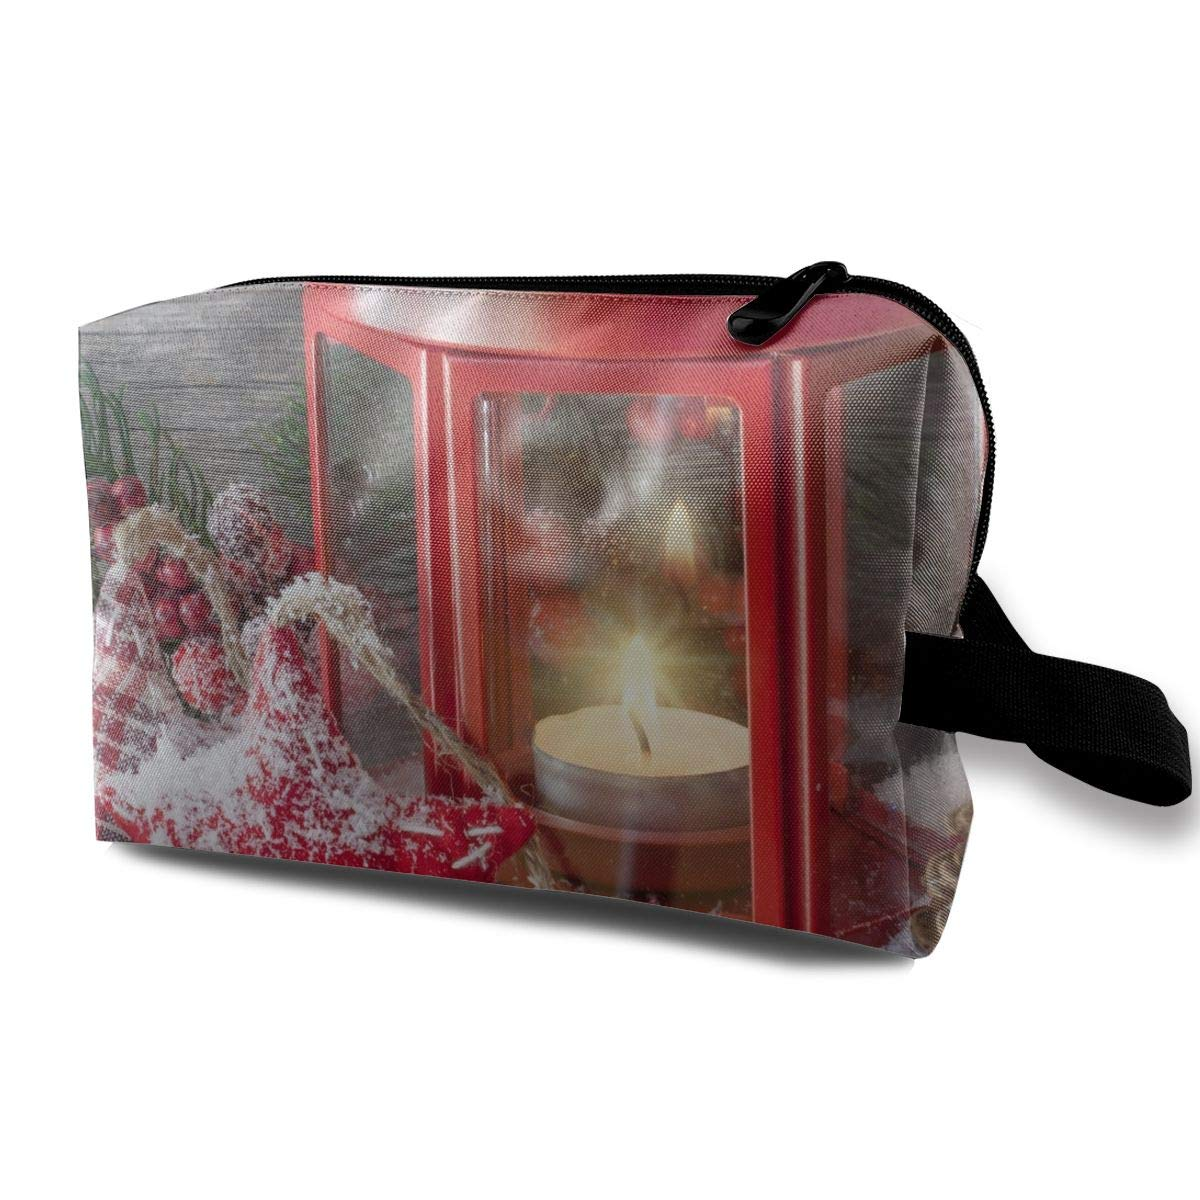 Candle Christmas Cold Frost Frozen Ice Lamp Red Season Snow Stars Multi-function Travel Makeup Toiletry Coin Bag Case